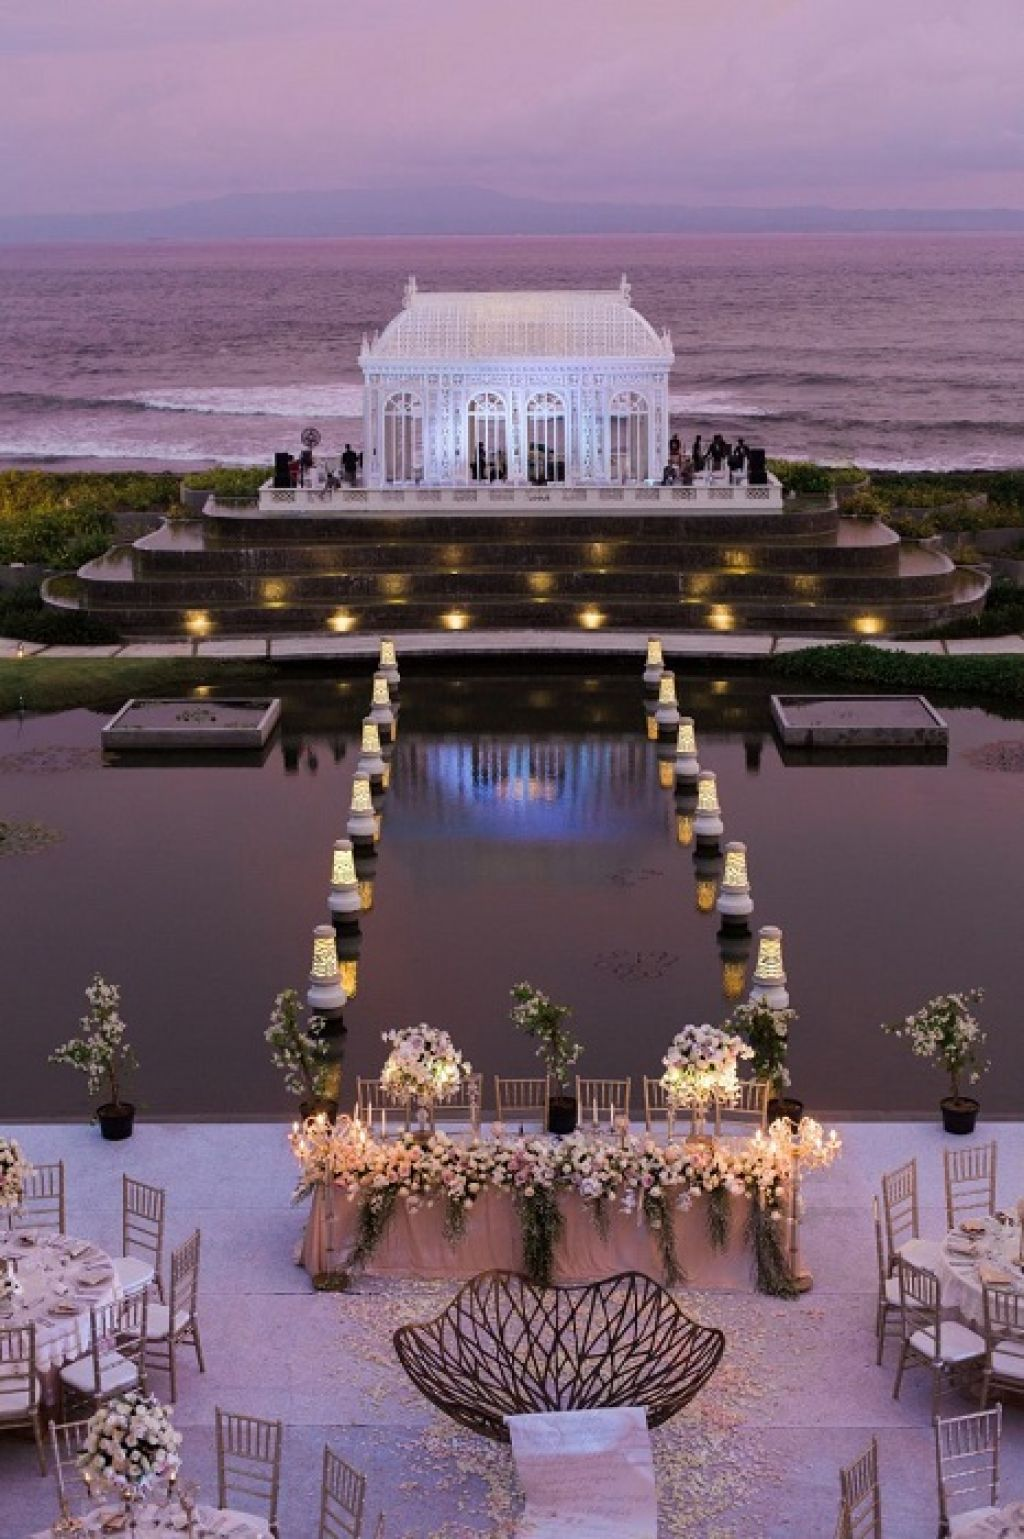 Top 15 Bali Wedding Venues You Need To Check Out